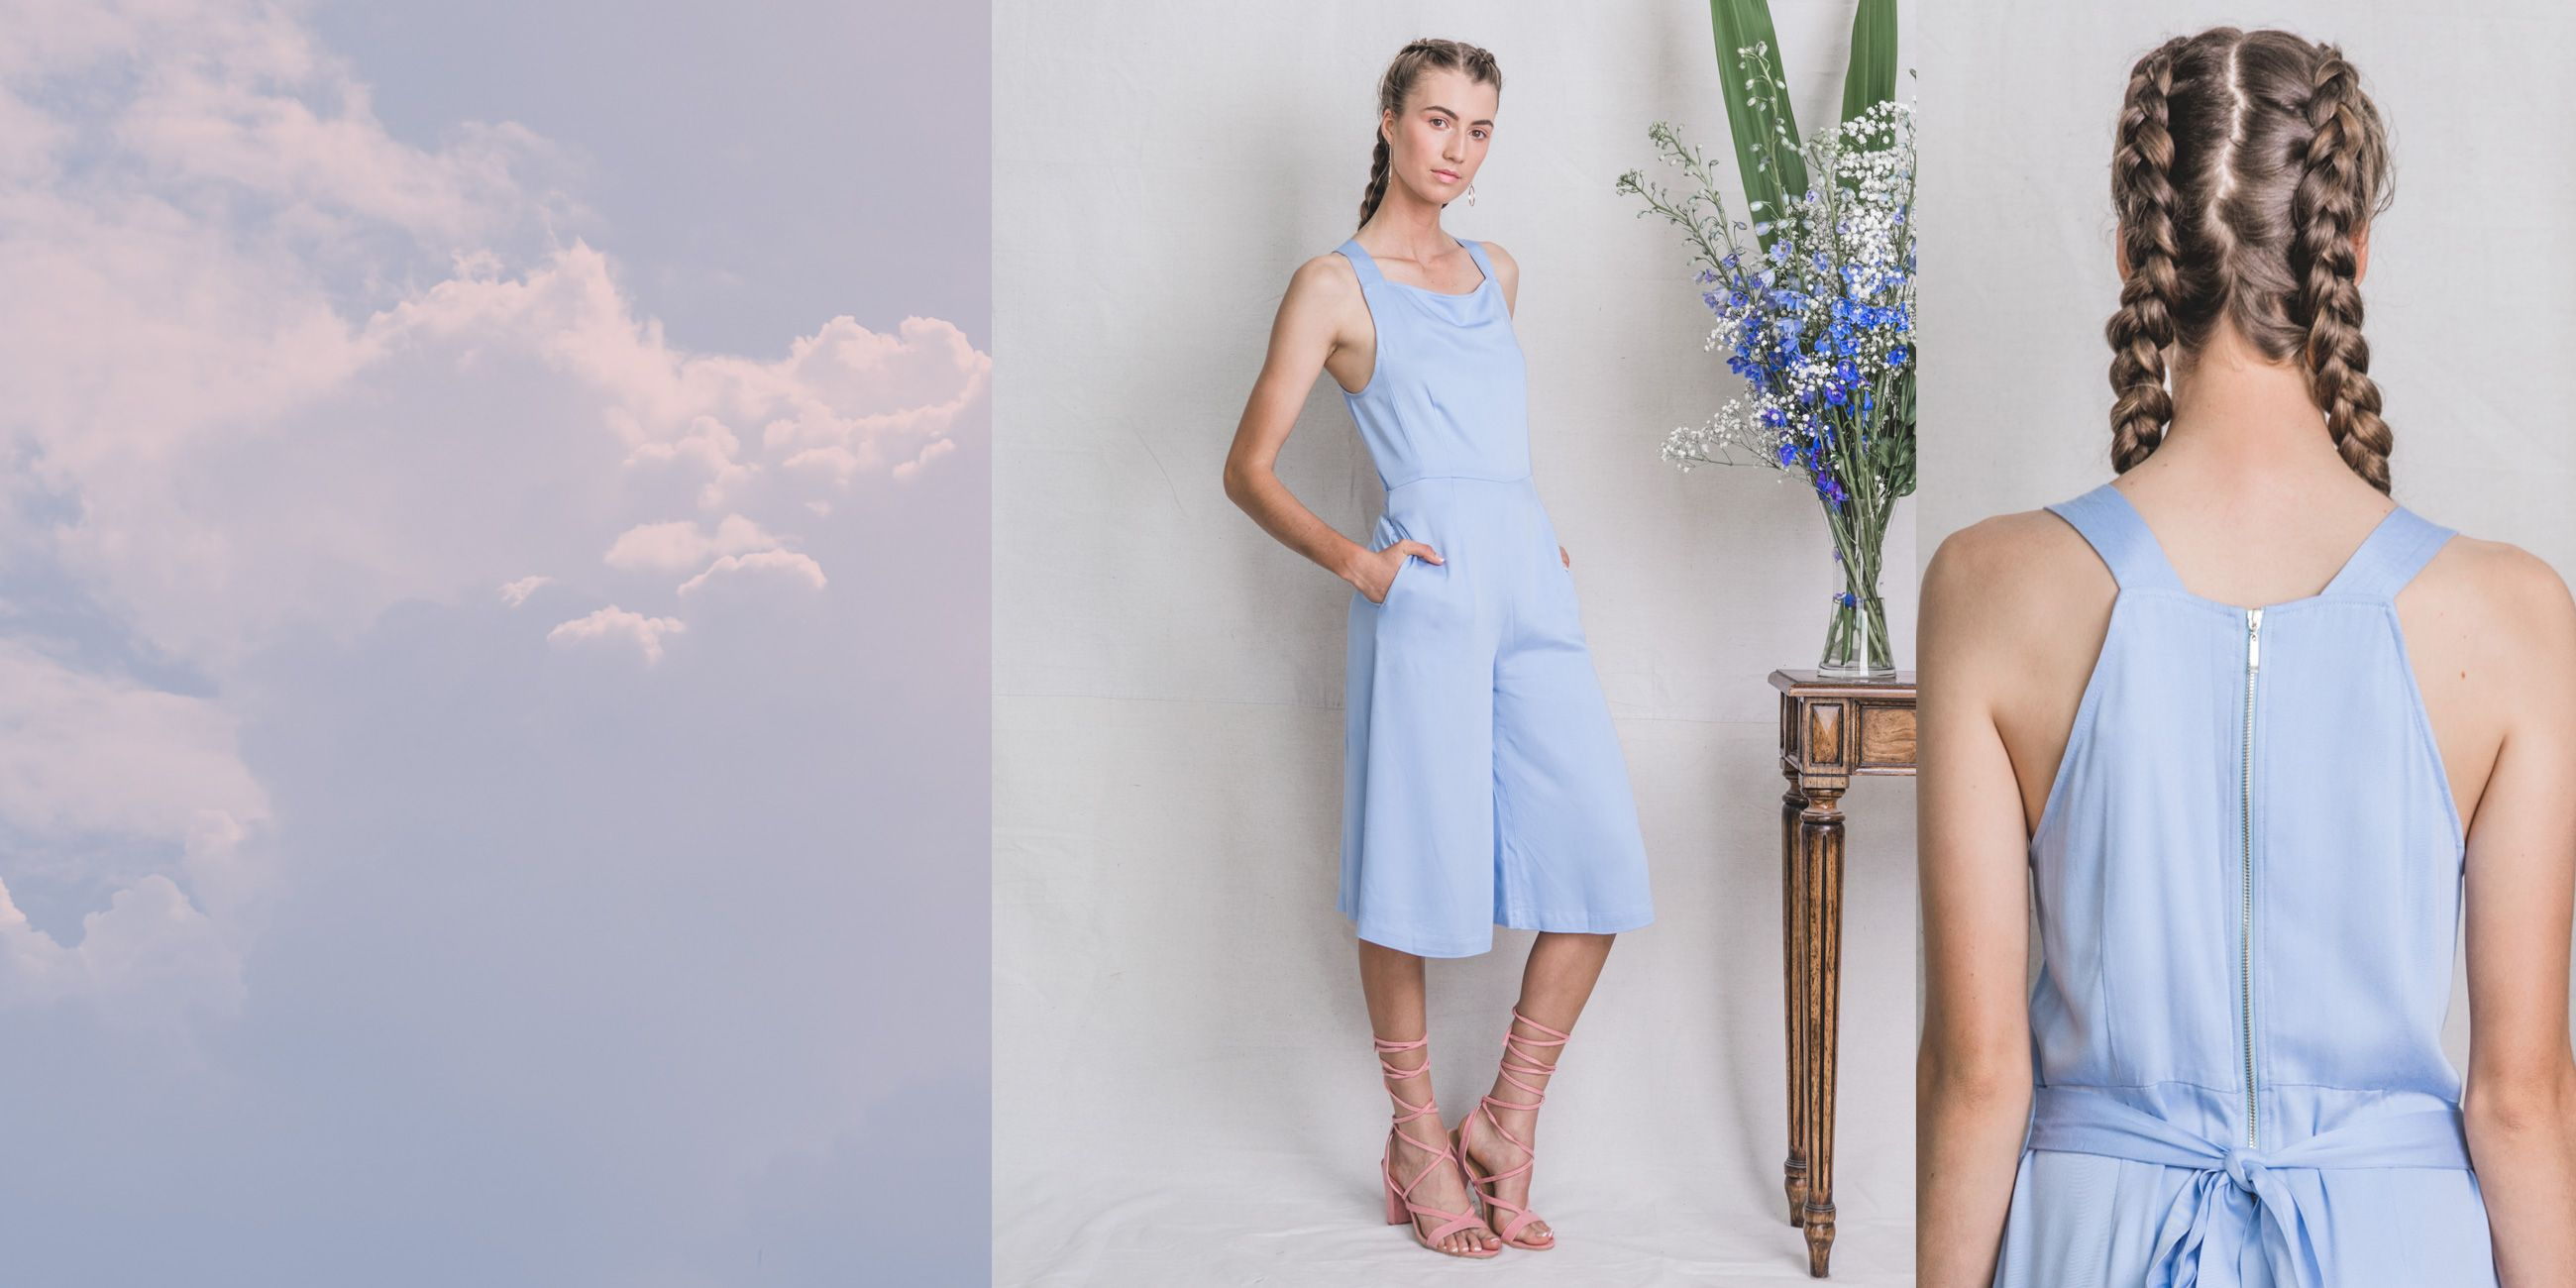 Lyra Bamboo Playsuit in Serenity Blue – The Great Beyond 2